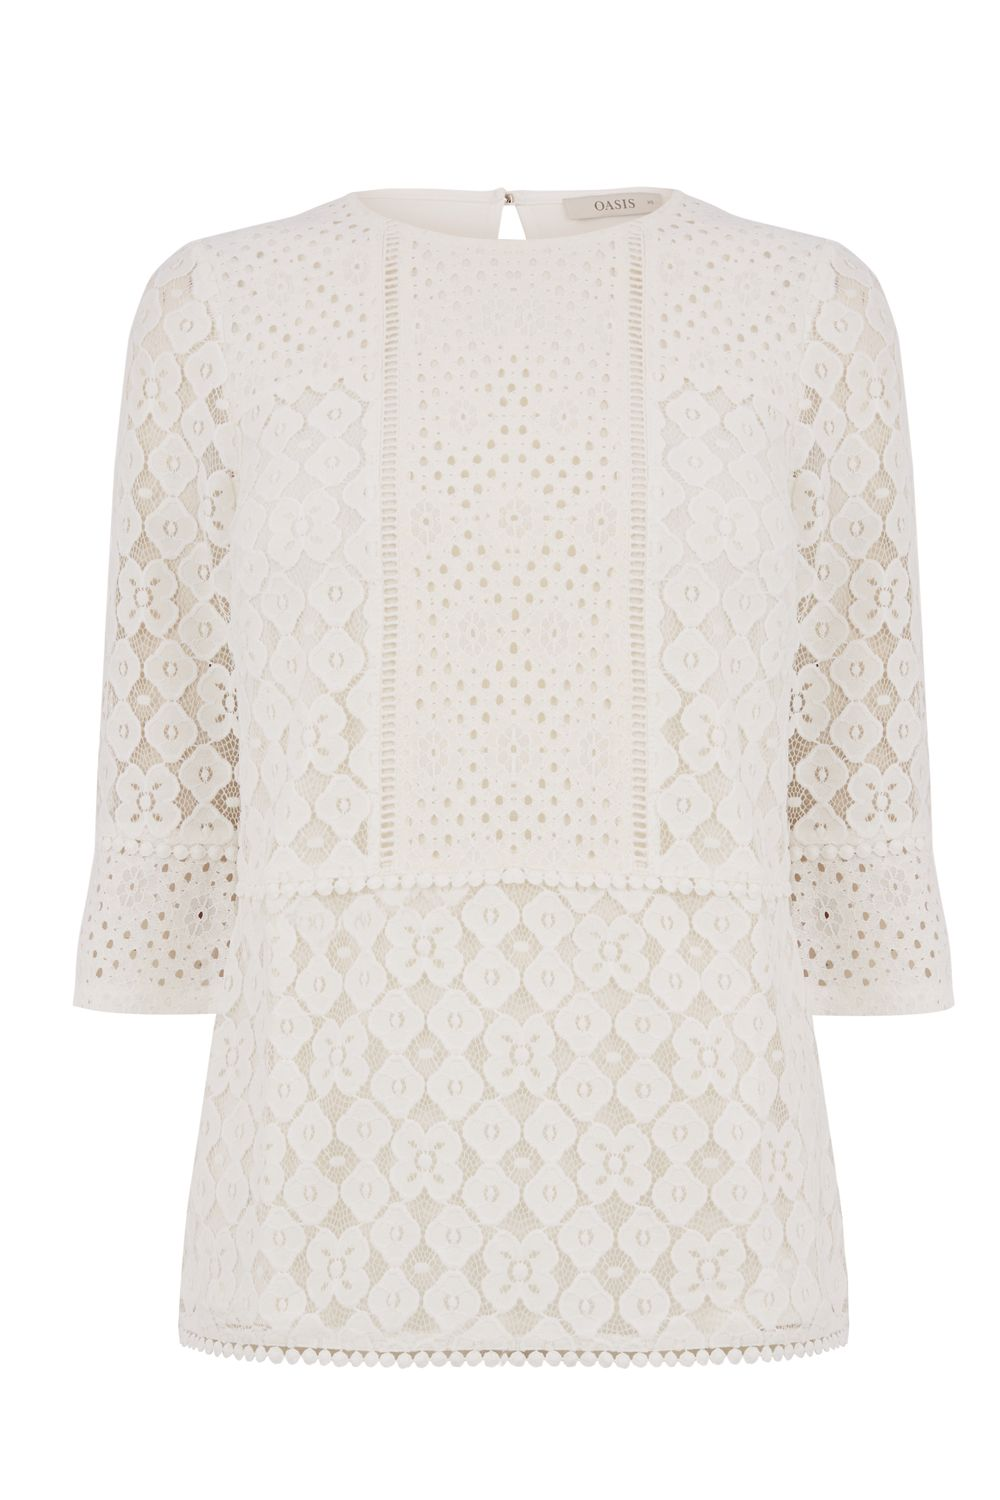 Oasis Kick Sleeve Lace Top, Stone